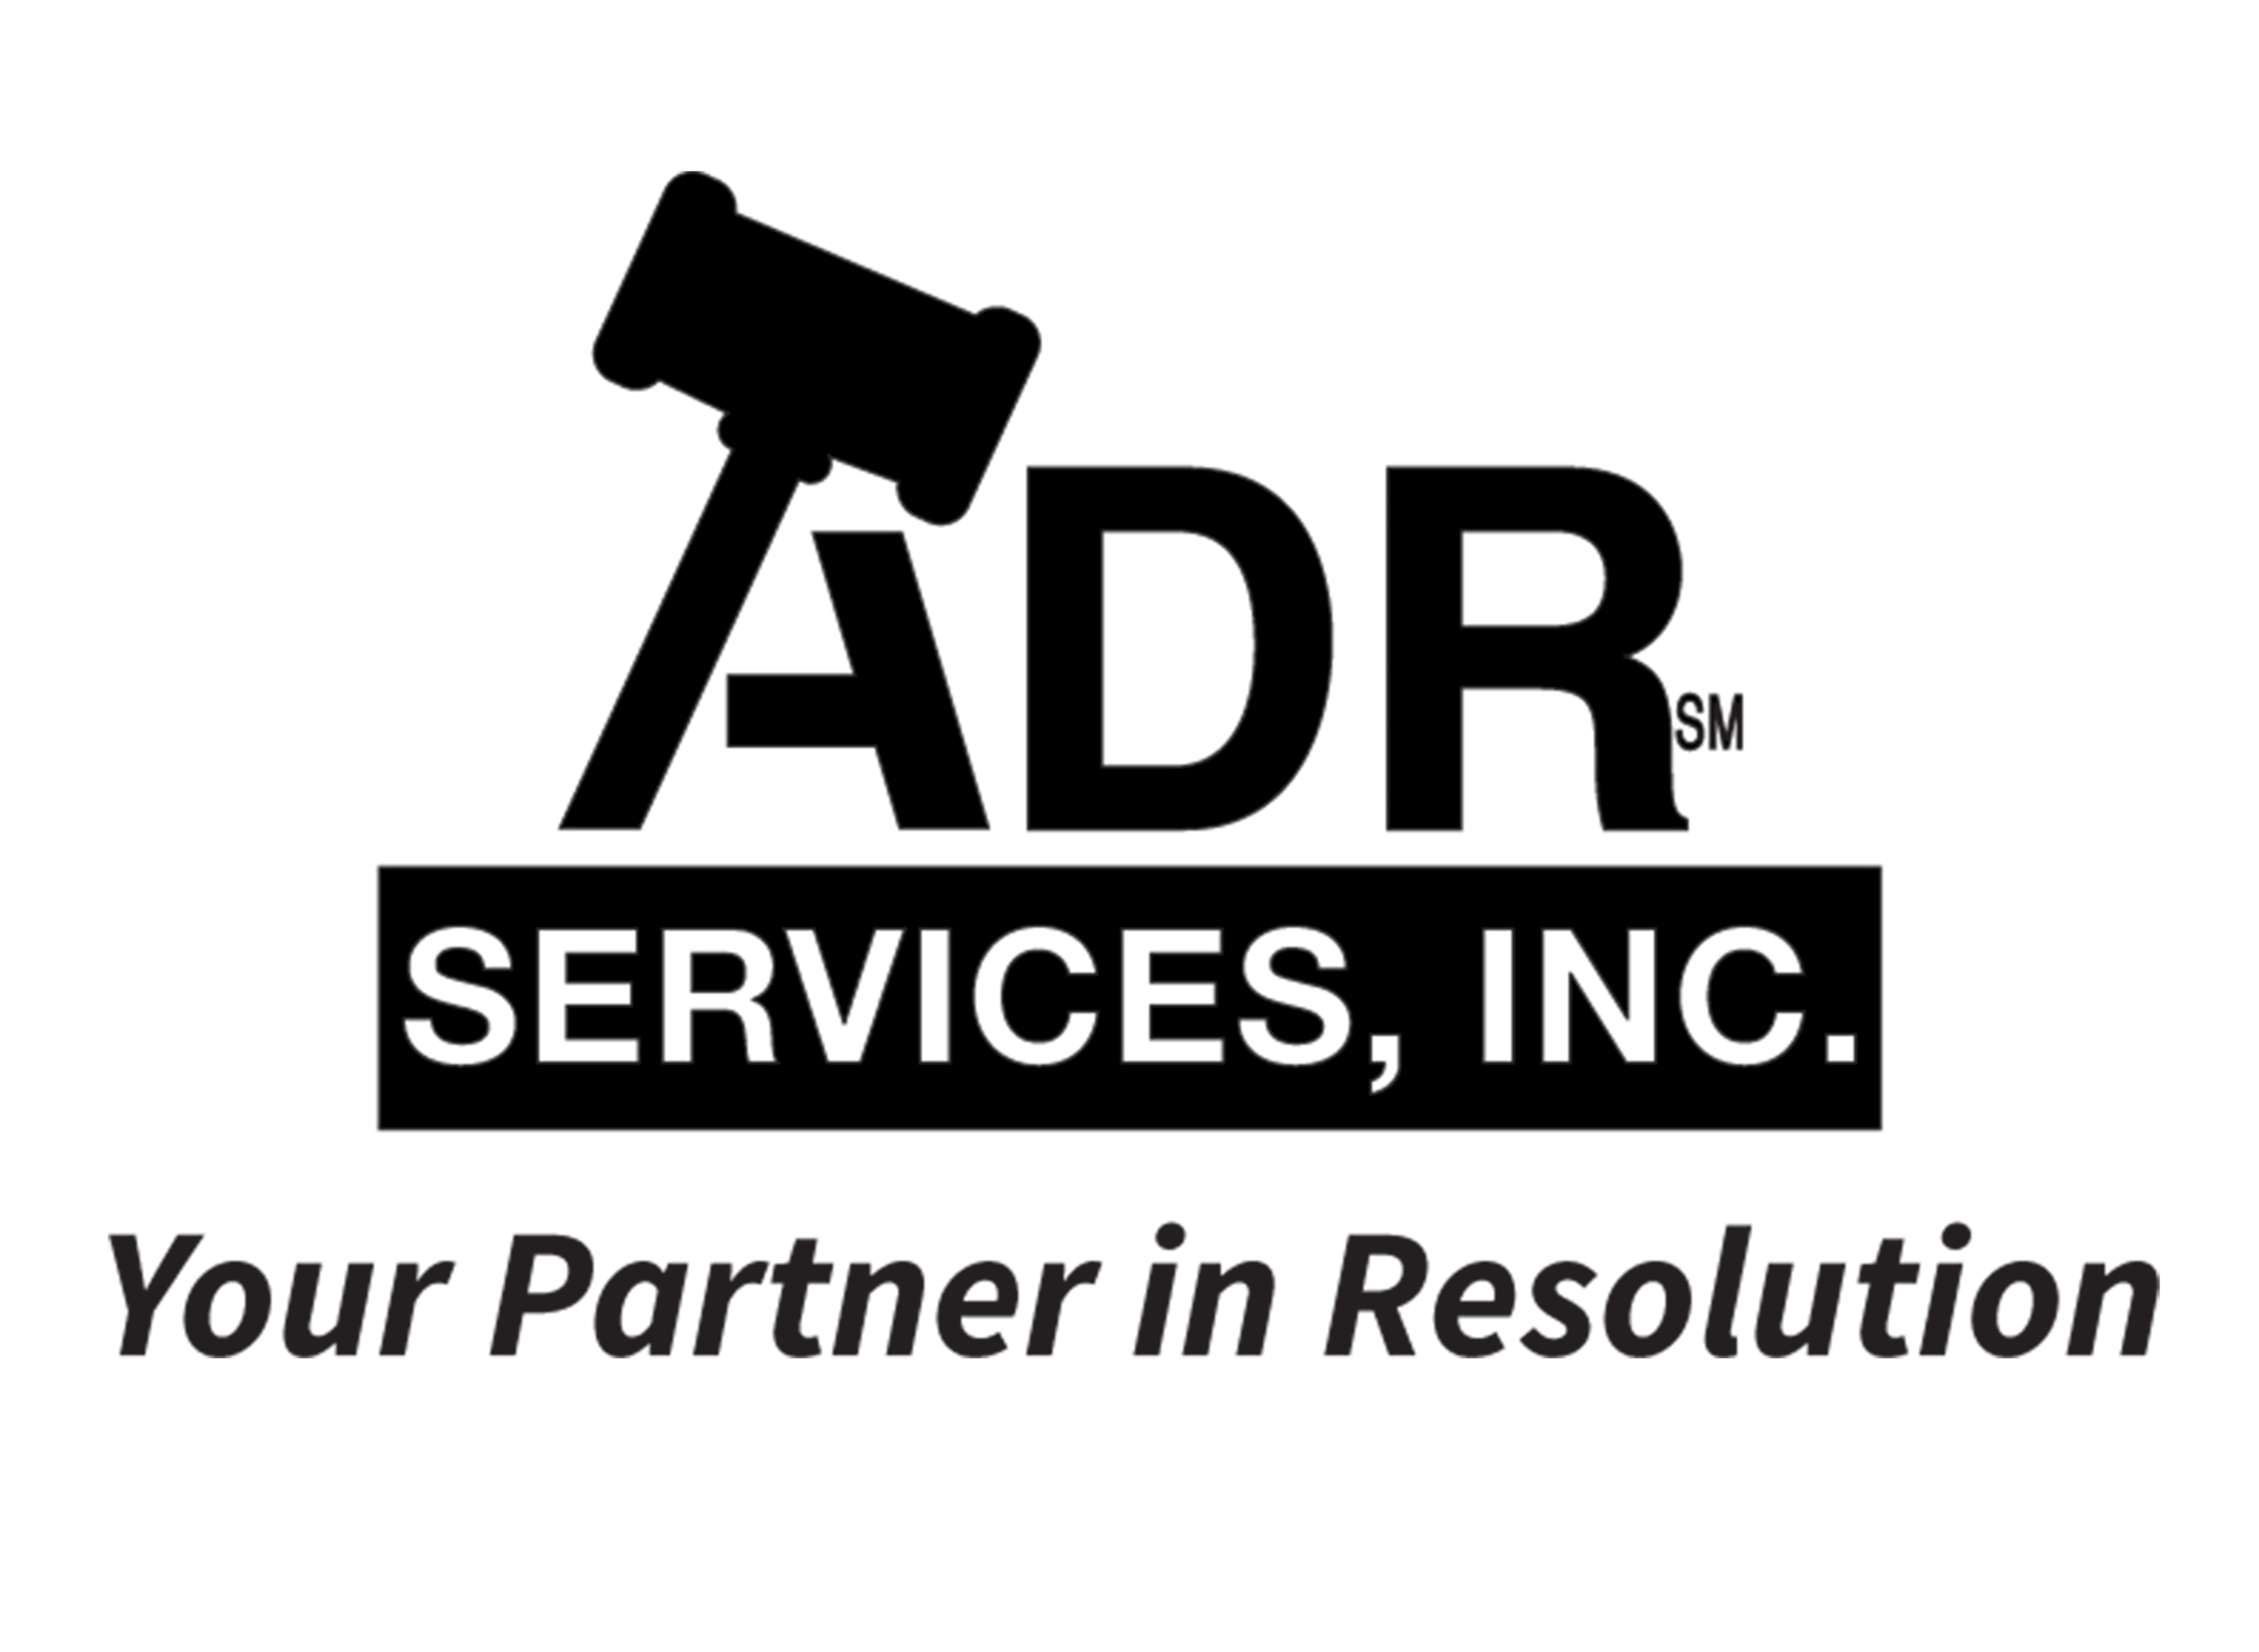 ADRS 2018 logo.png